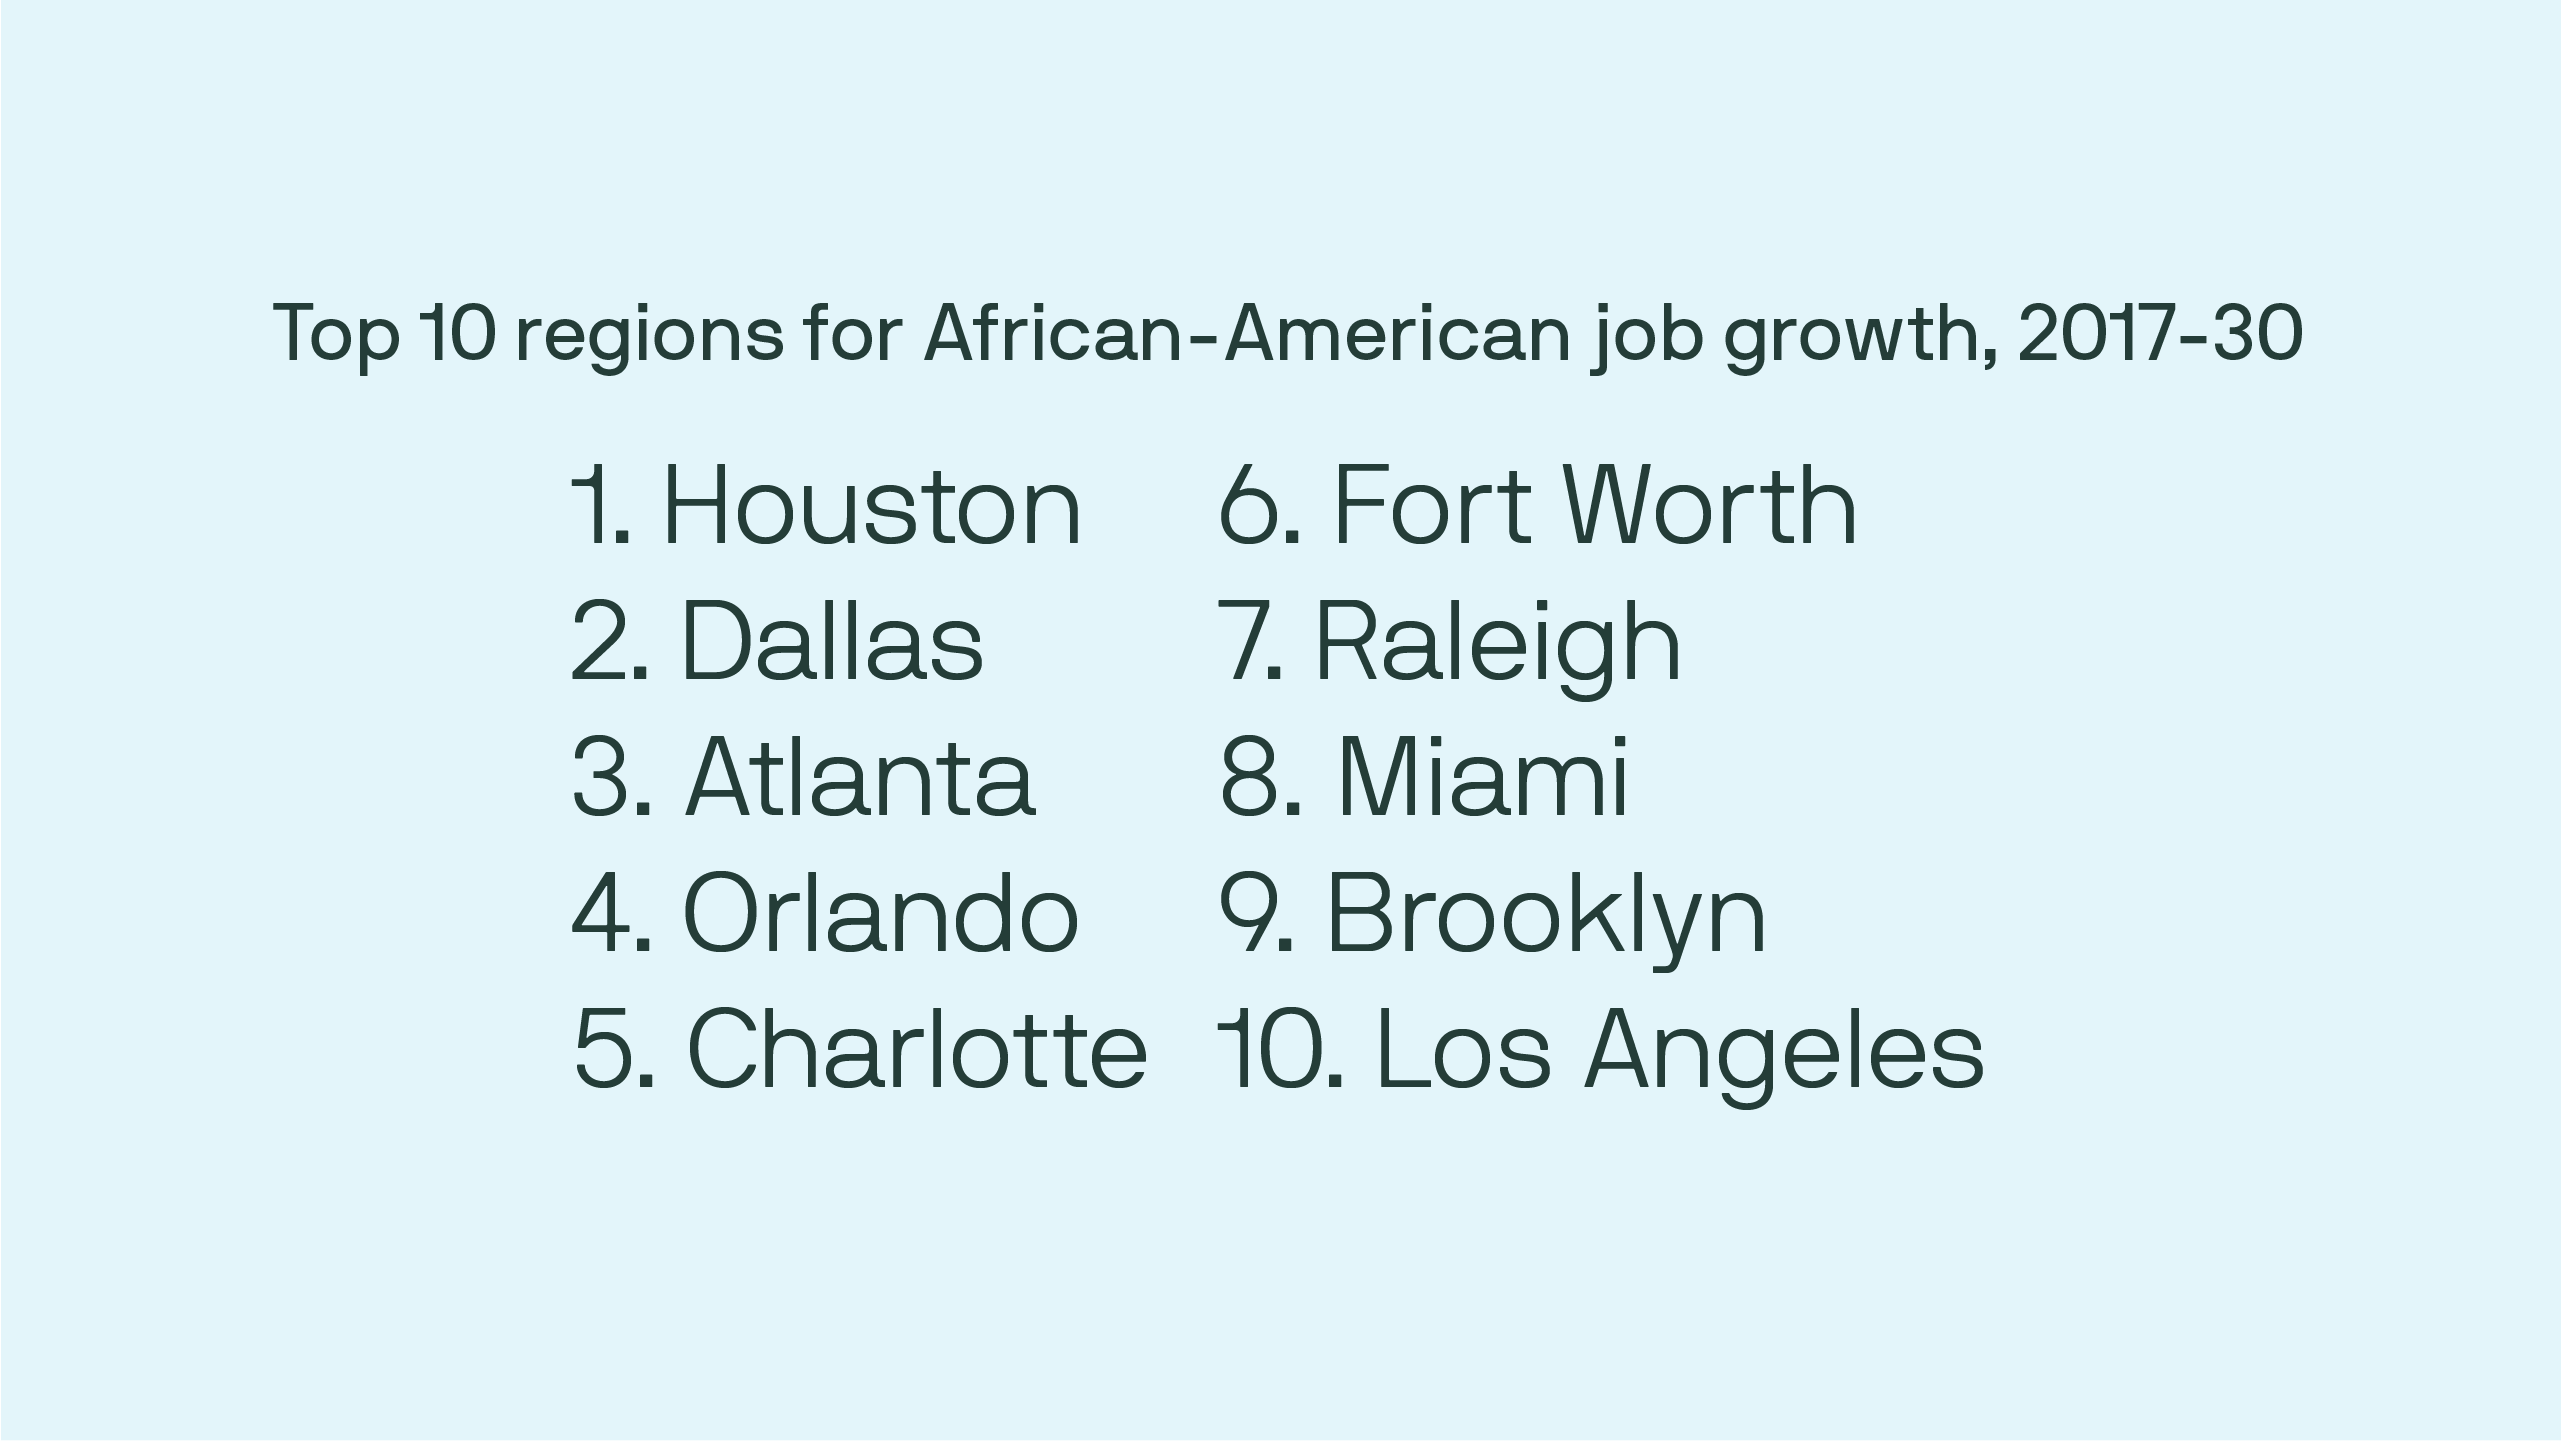 Top 10 regions for African-American job growth